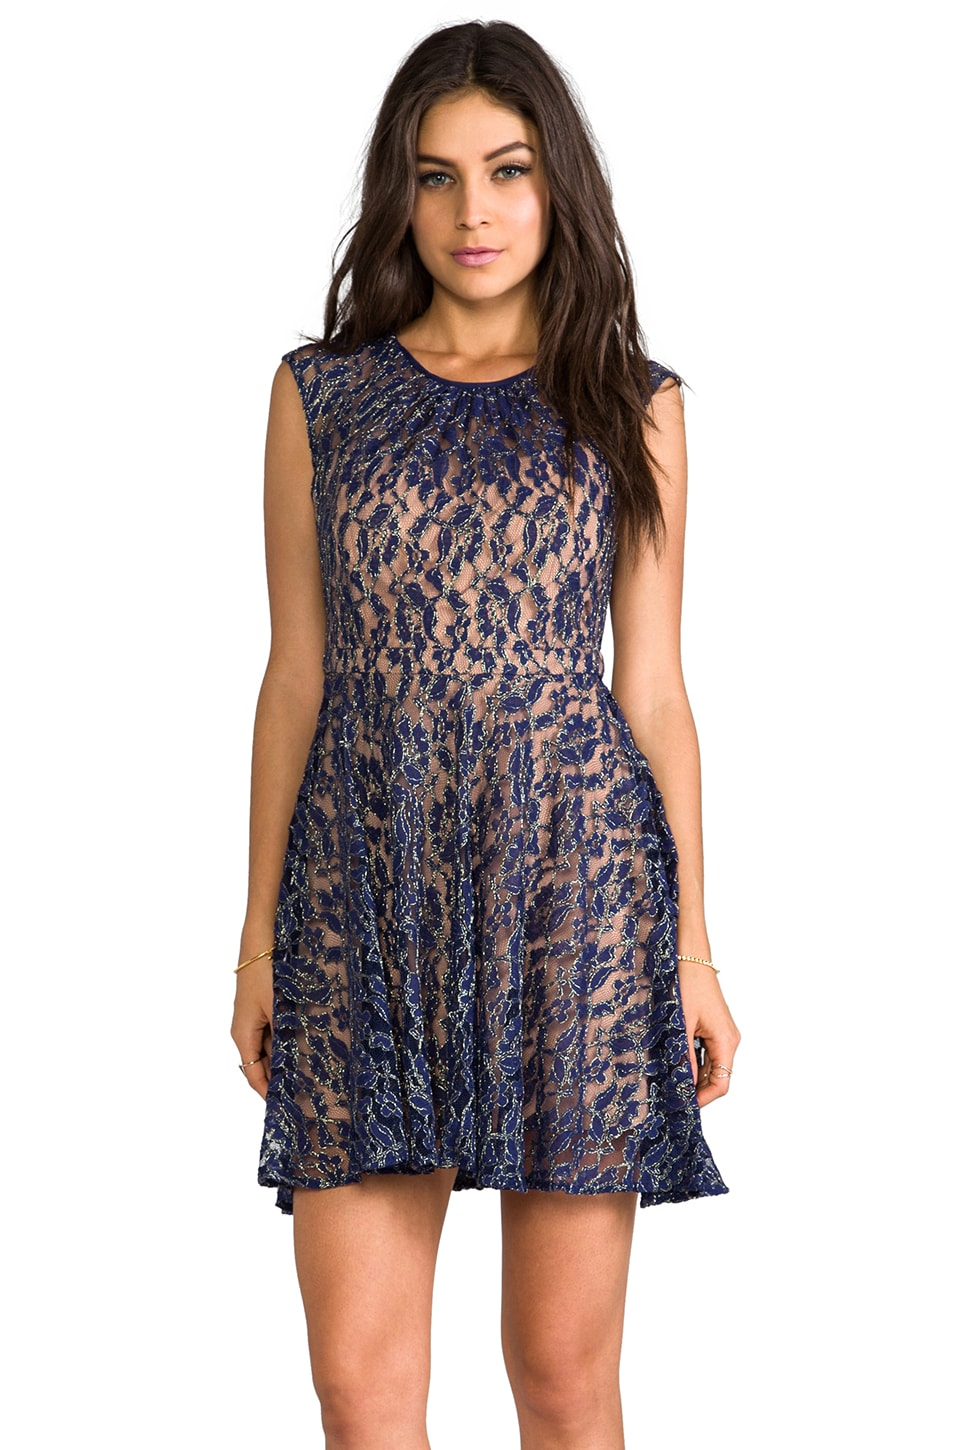 MM Couture by Miss Me Capsleeve Lace Dress in Navy